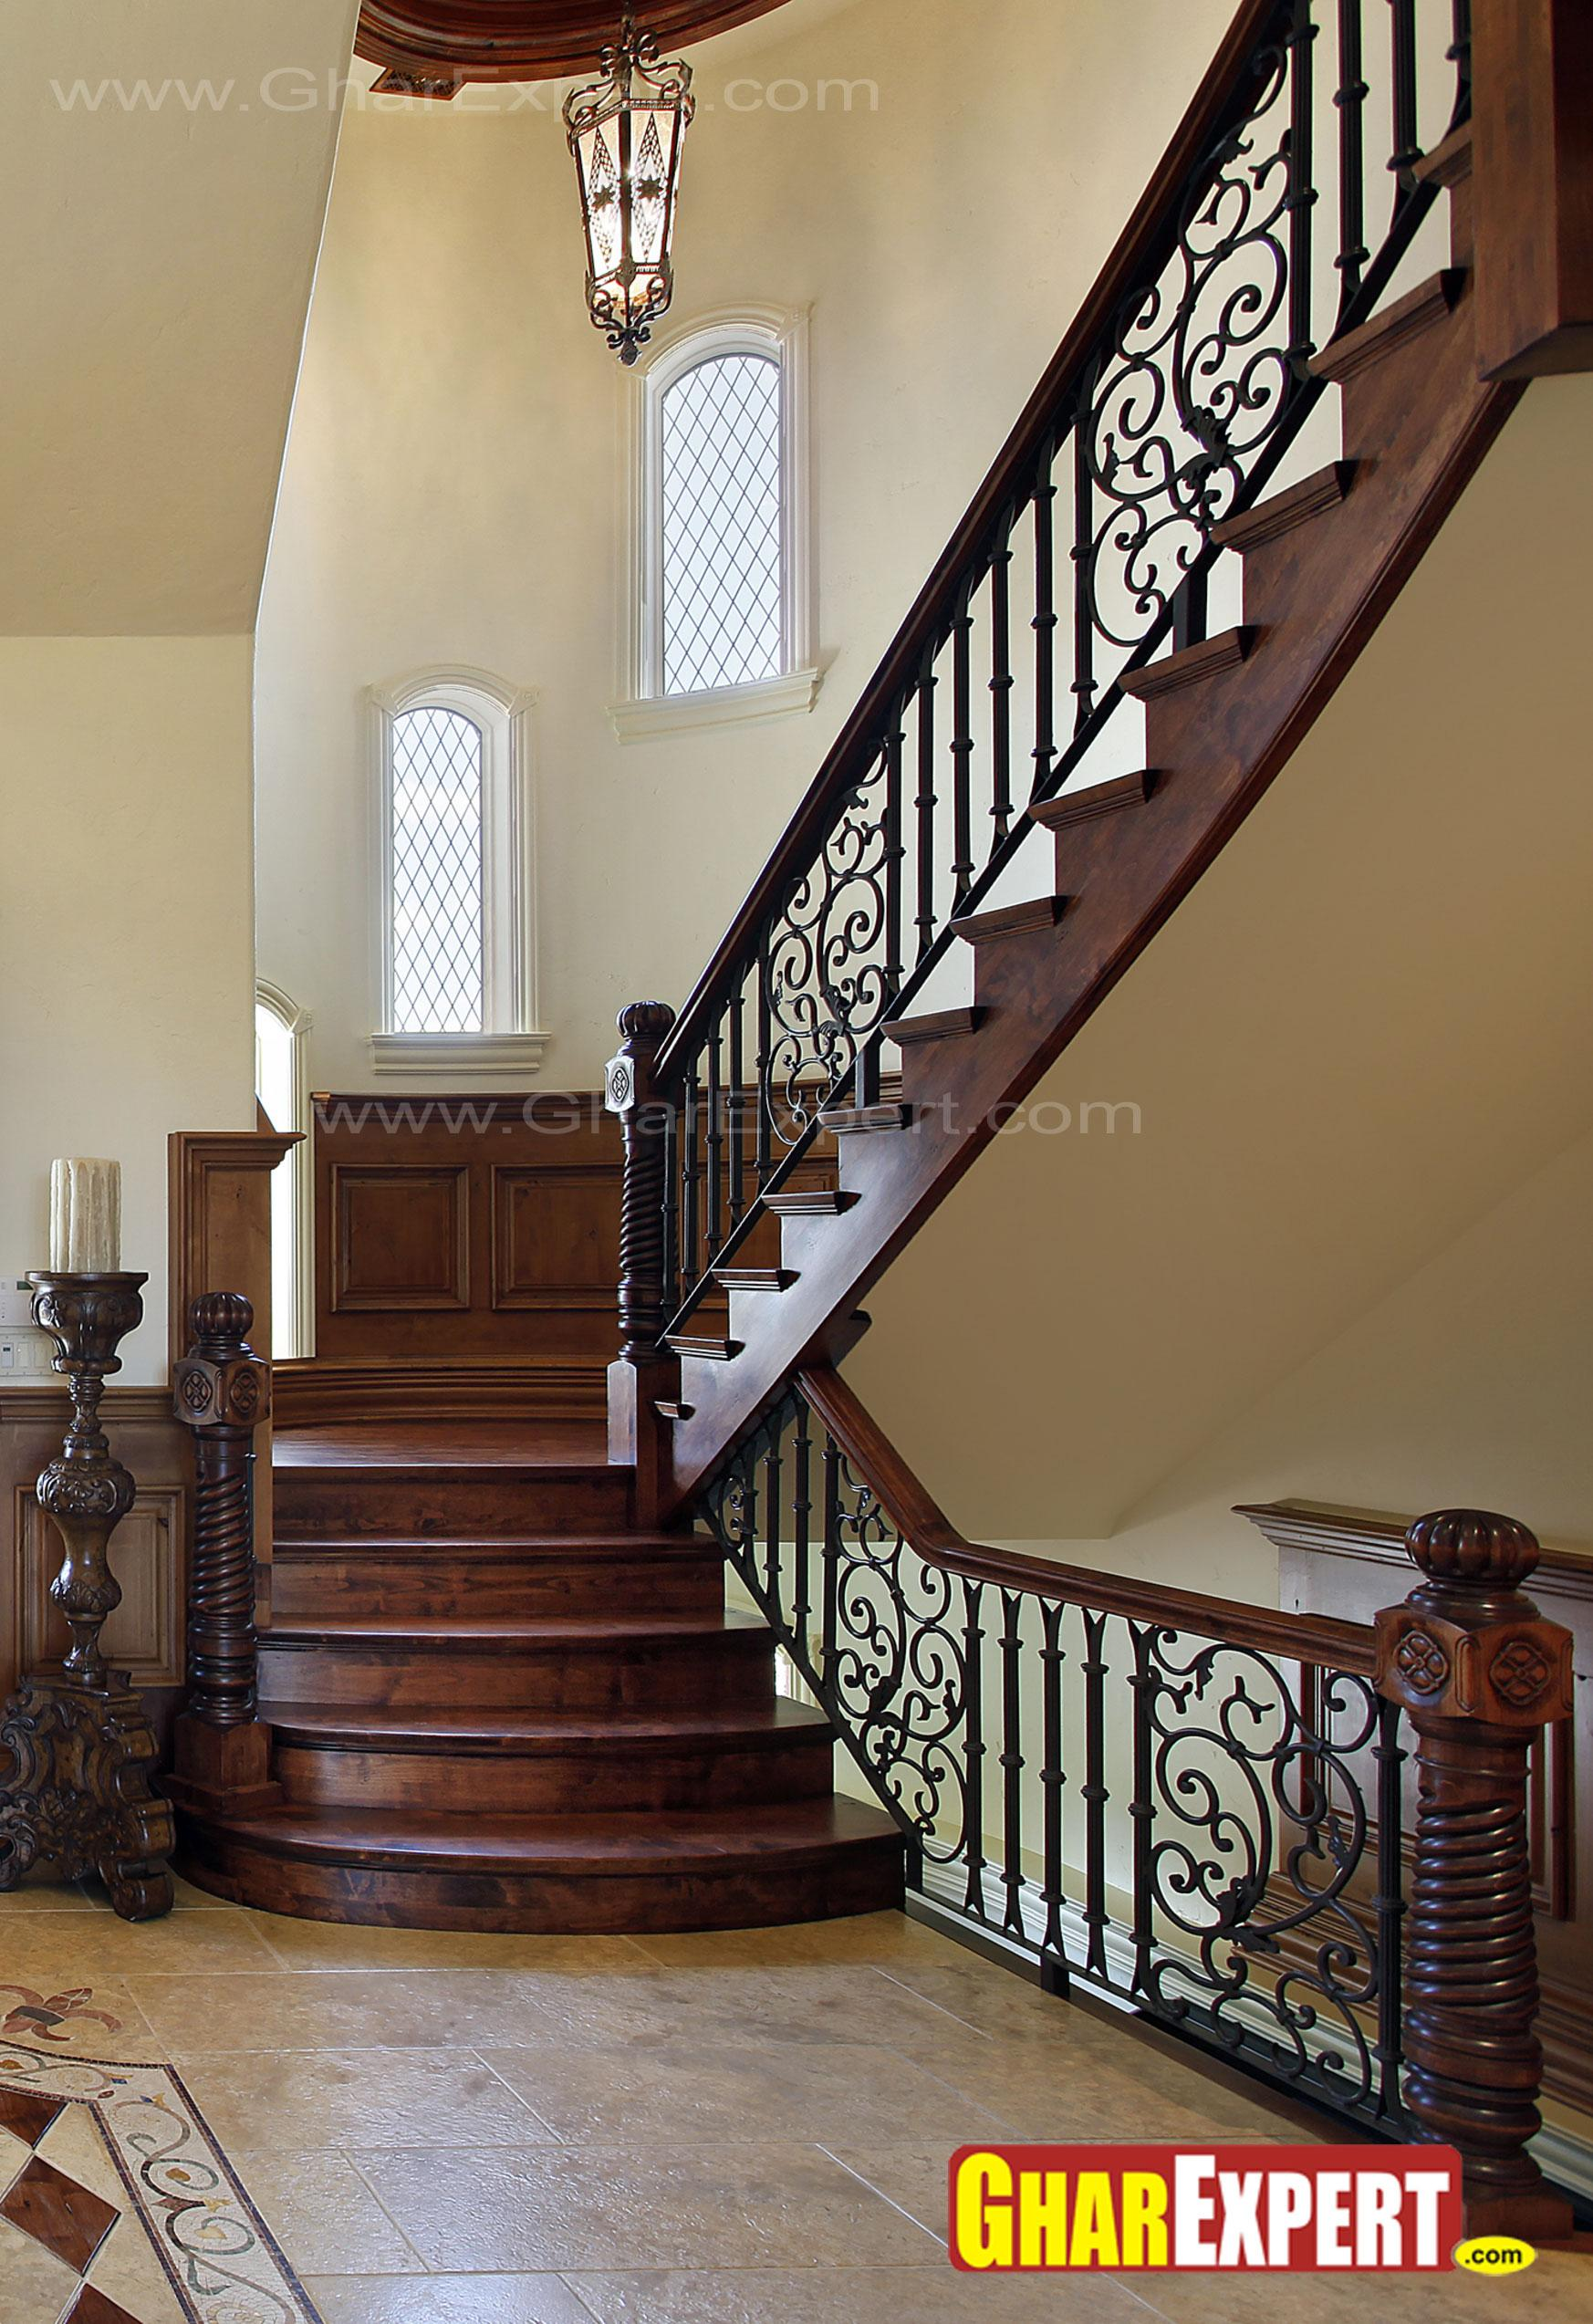 Wooden stairs railing design gharexpert for Exterior stairs designs of indian houses